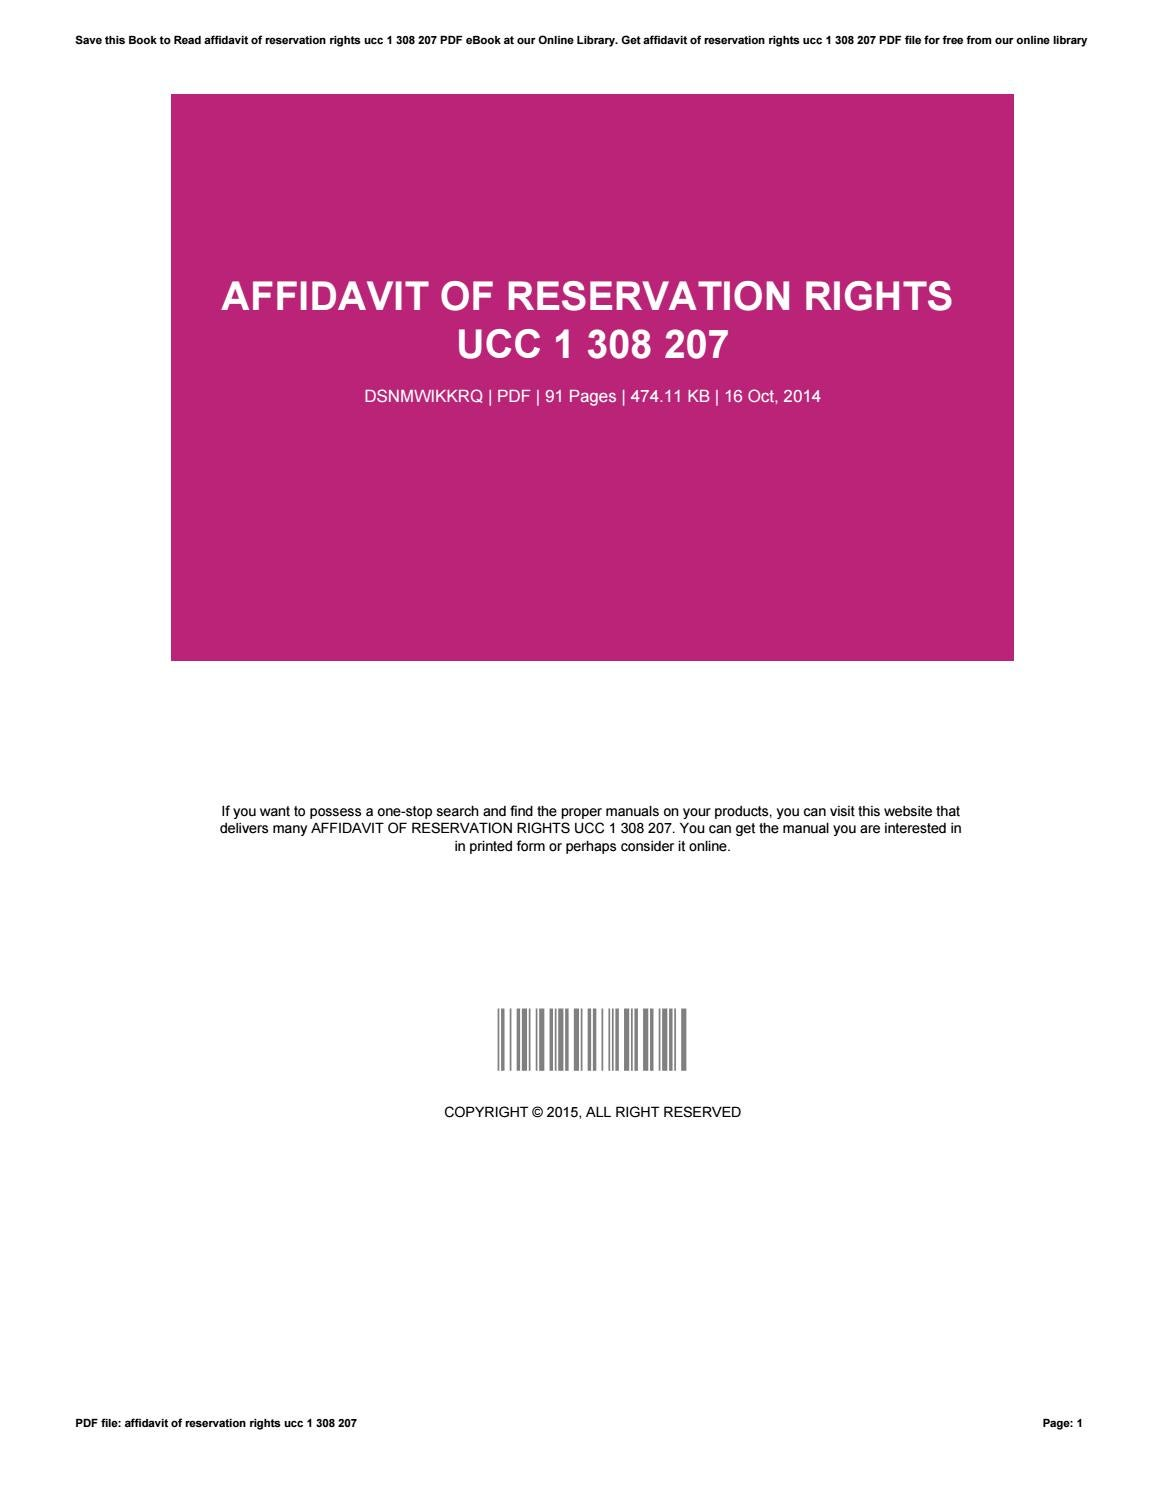 Affidavit of reservation rights ucc 1 308 207 by KarlNakamura4838 ...